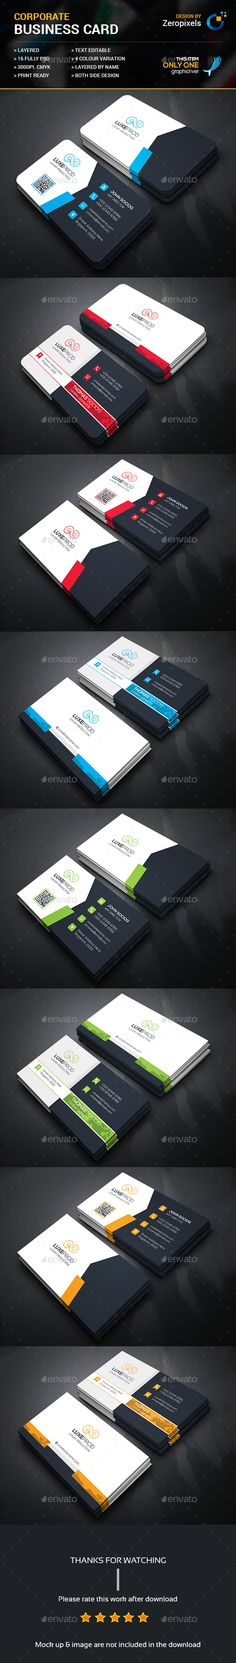 Corporate Business Card Bundle - Business Cards Print Templates Download here : https://graphicriver.net/item/corporate-business-card-bundle/17664863?s_rank=32&ref=Al-fatih